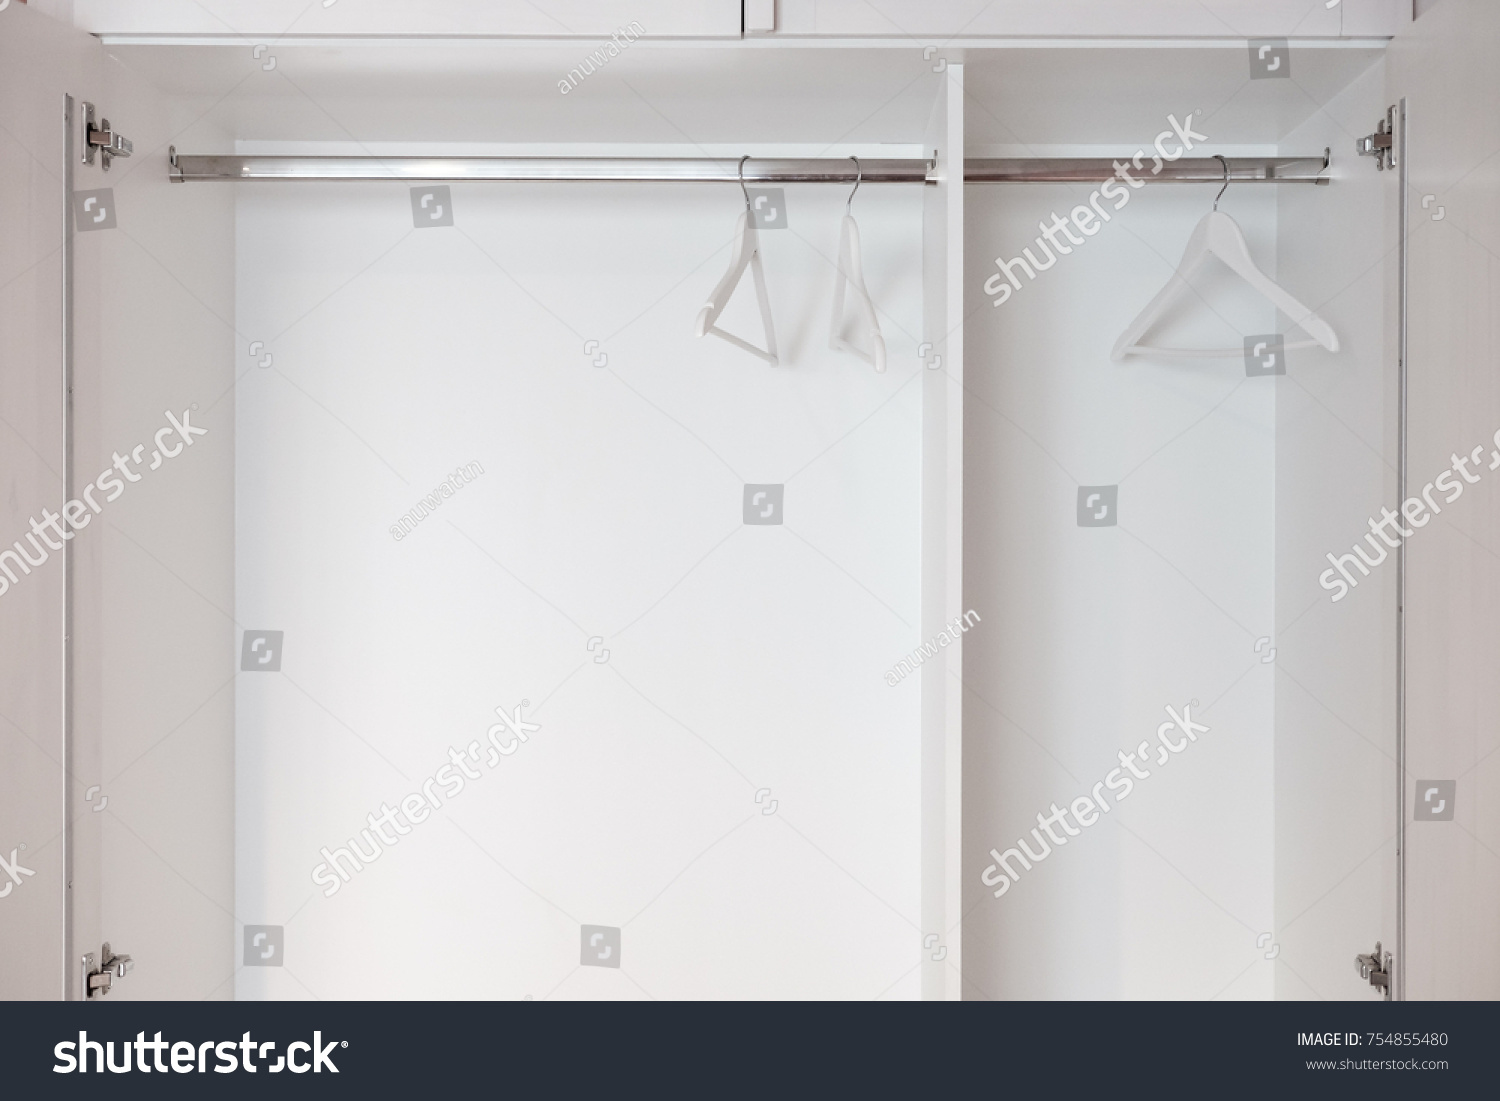 empty closet with hangers. Empty White Closet Wardrobe Hangers Rail Stock Photo (Royalty Free) 754855480 - Shutterstock With R